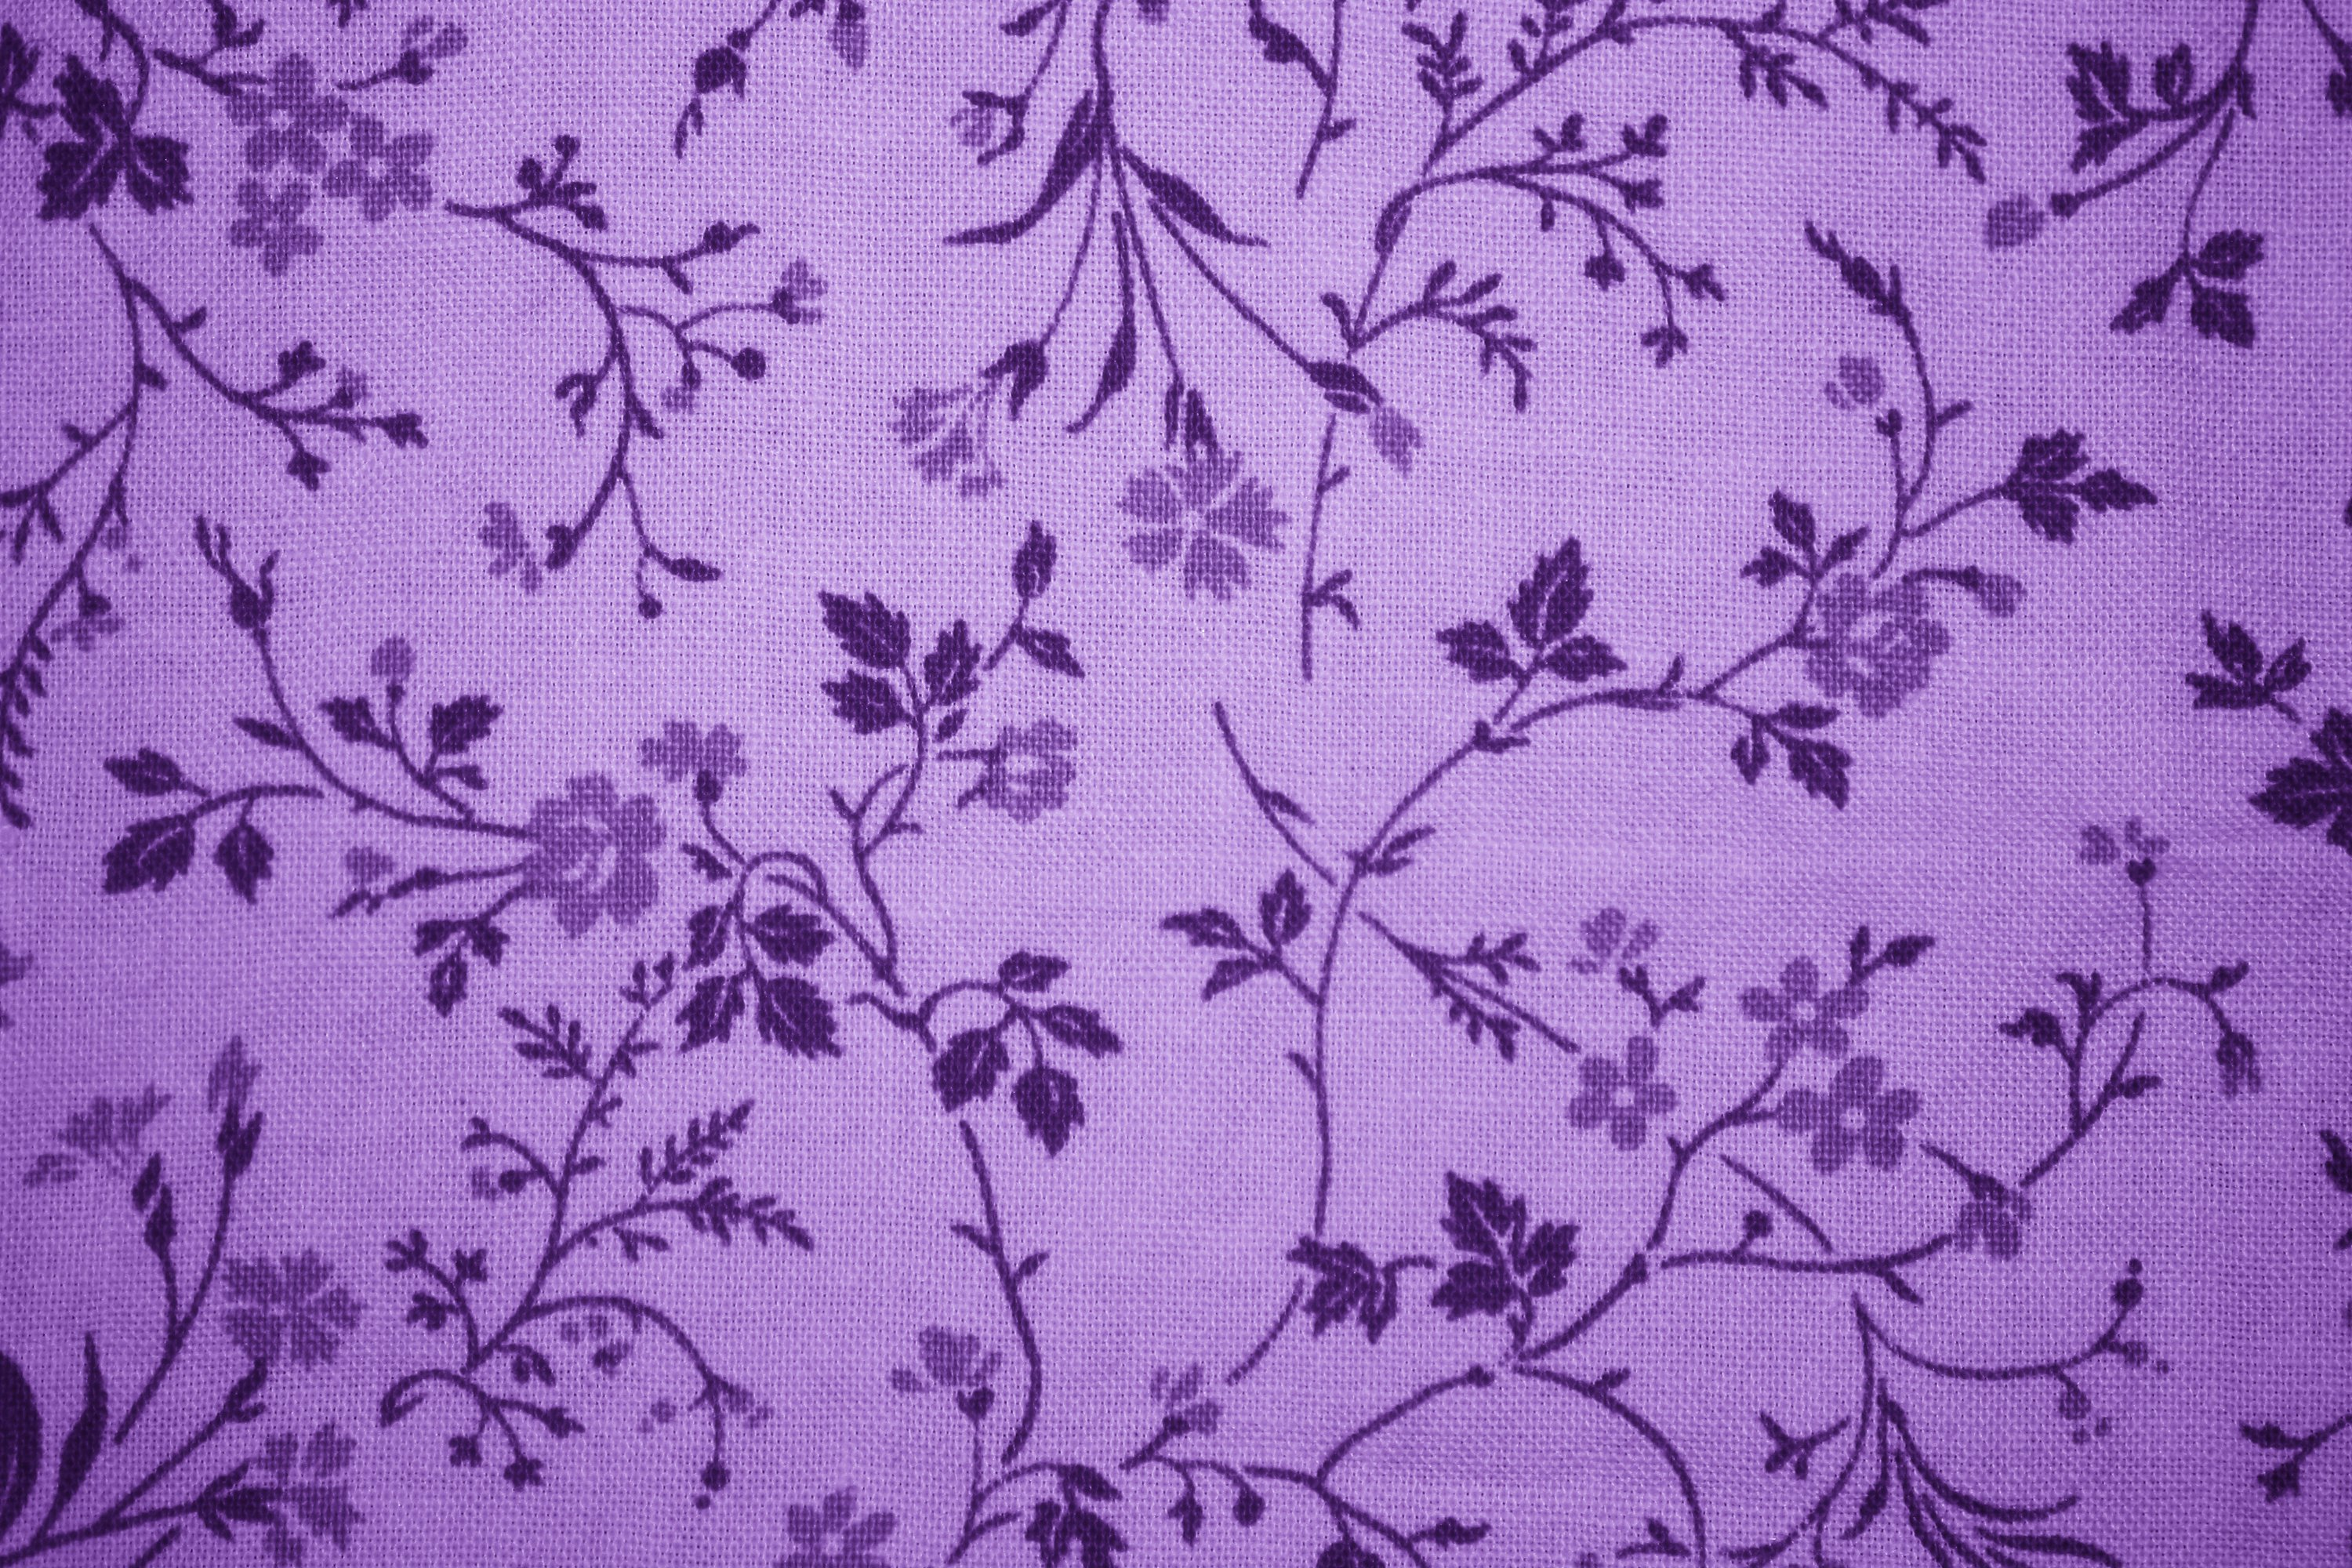 Purple Floral Print Fabric Texture Picture | Free Photograph | Photos ...